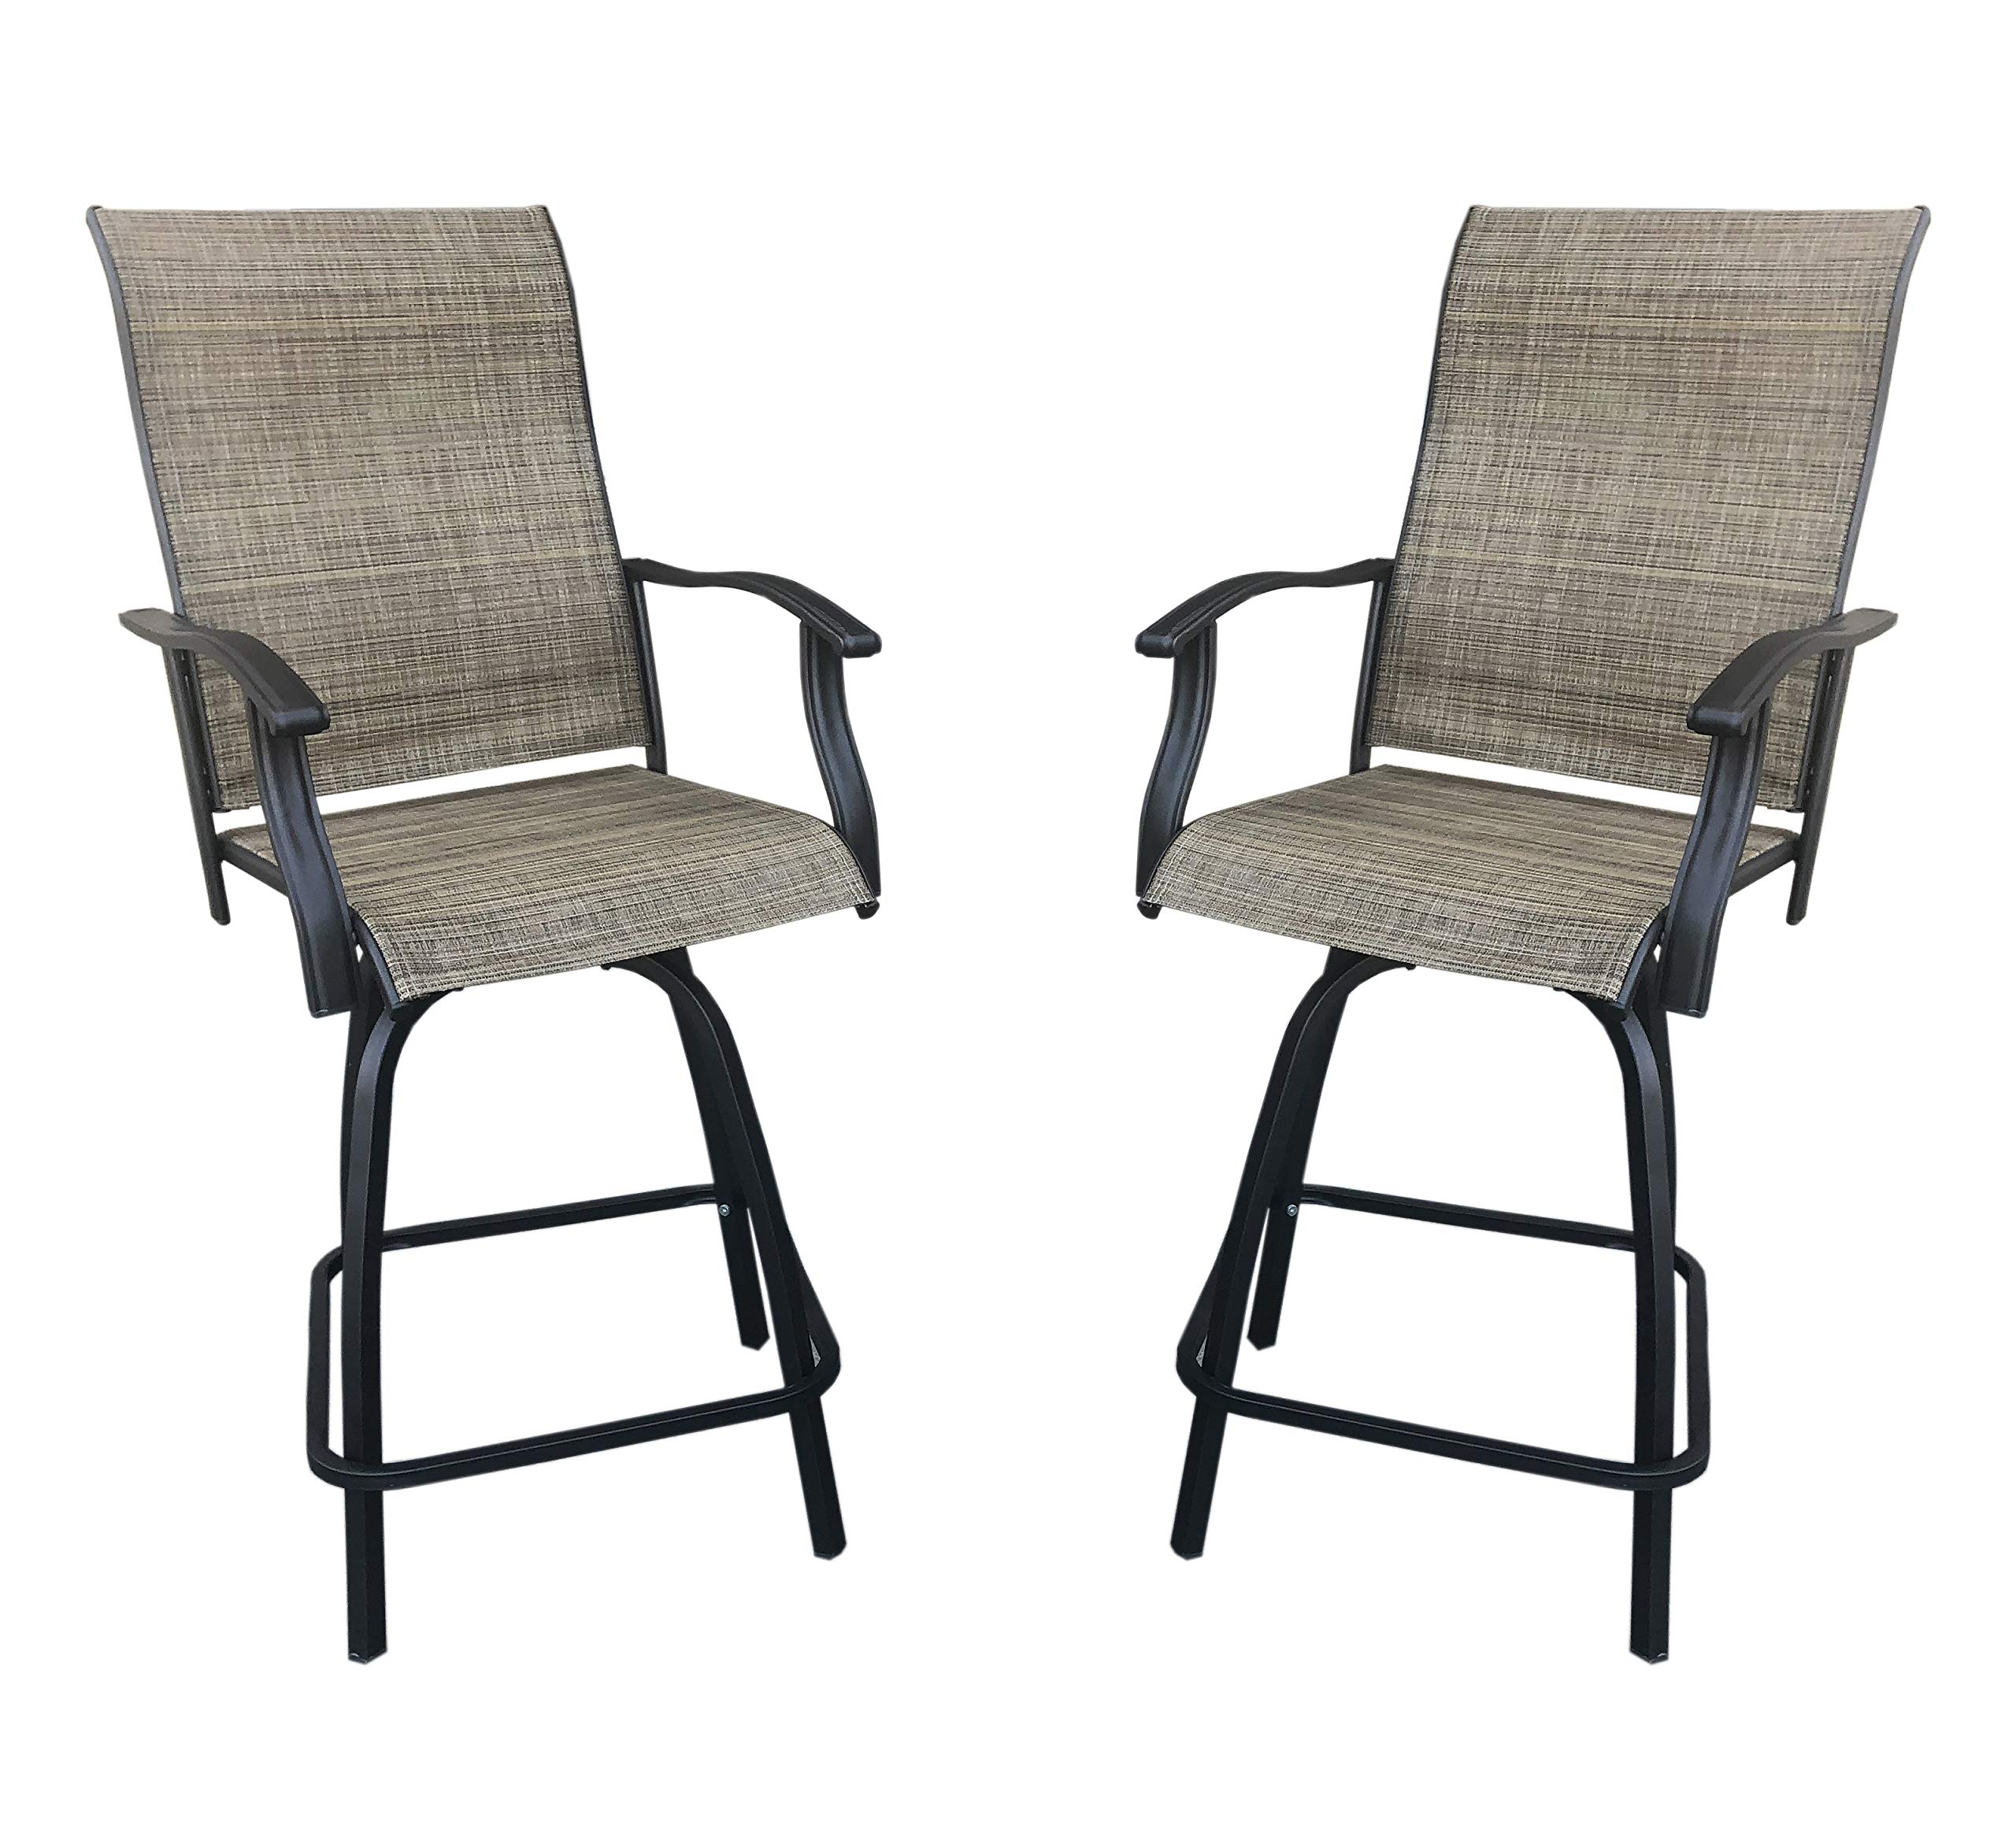 Kokomo – 2 Outdoor Kitchen Barstools